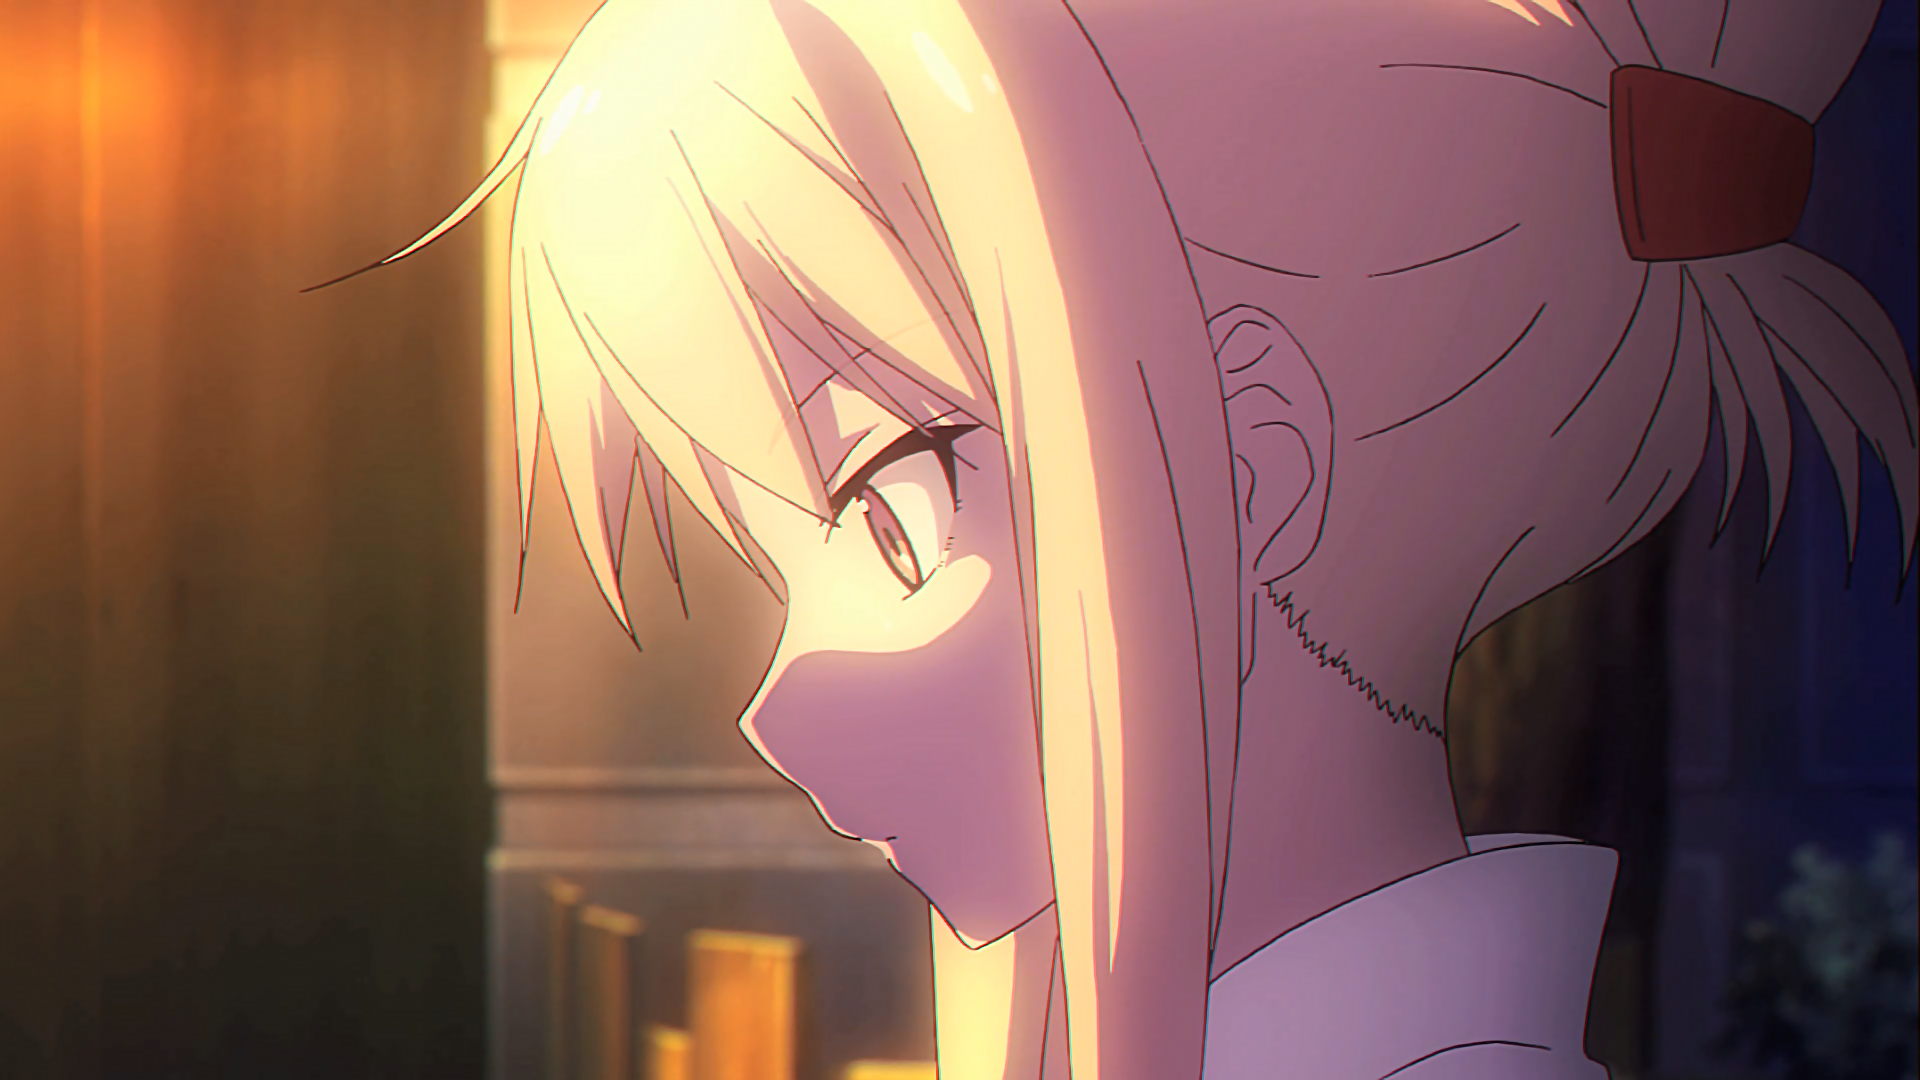 Anime - Sakurasou No Pet Na Kanojo  Mashiro Shiina Anime Girl Wallpaper